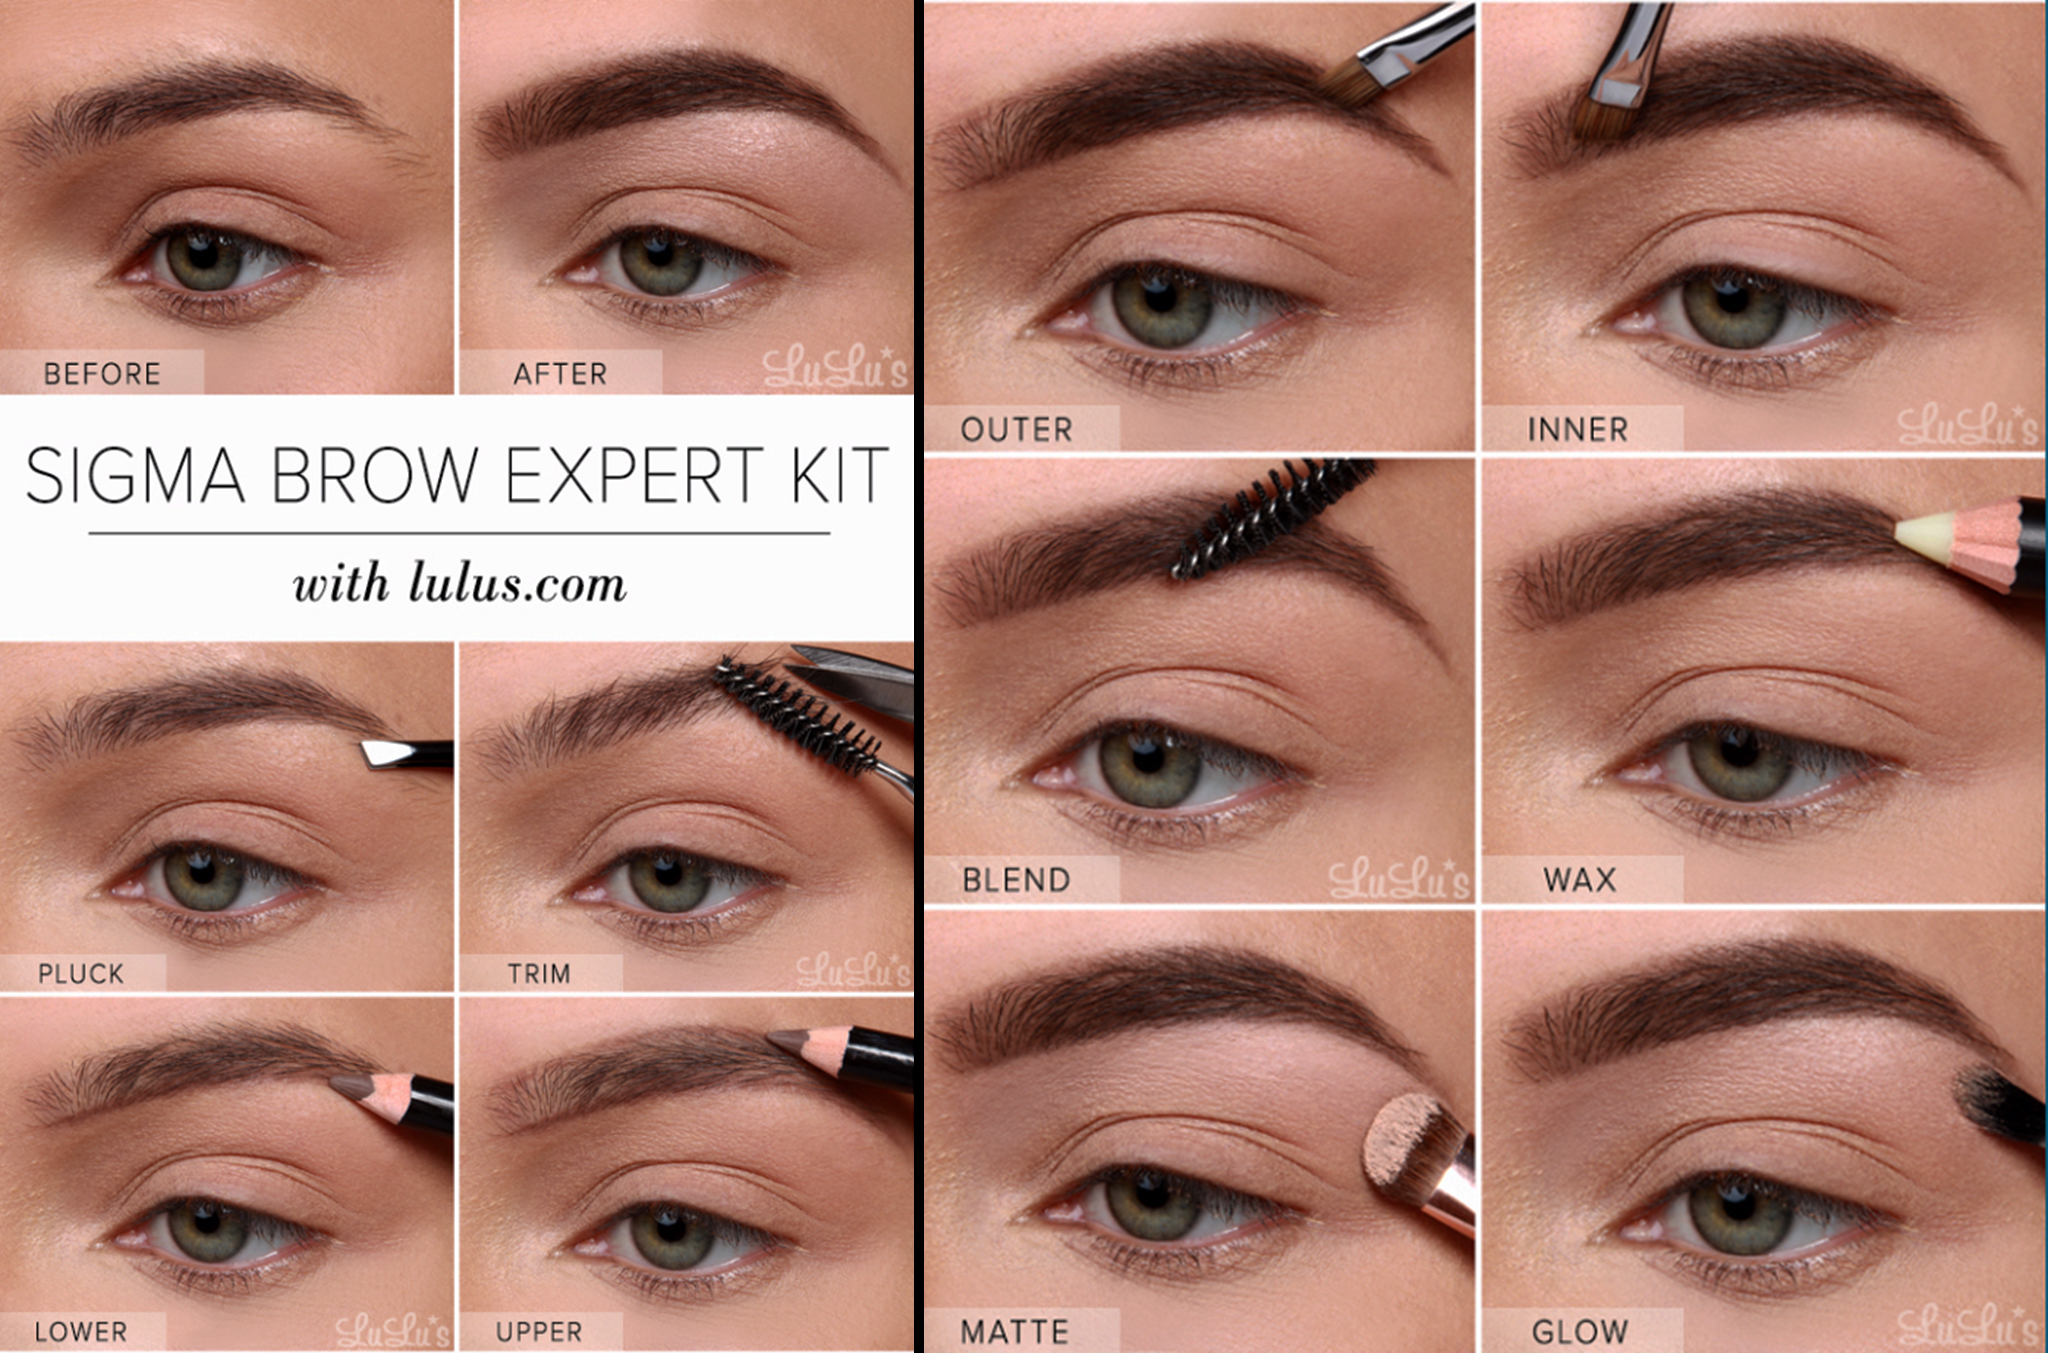 Sigma Brow Expert Kit Eyebrow